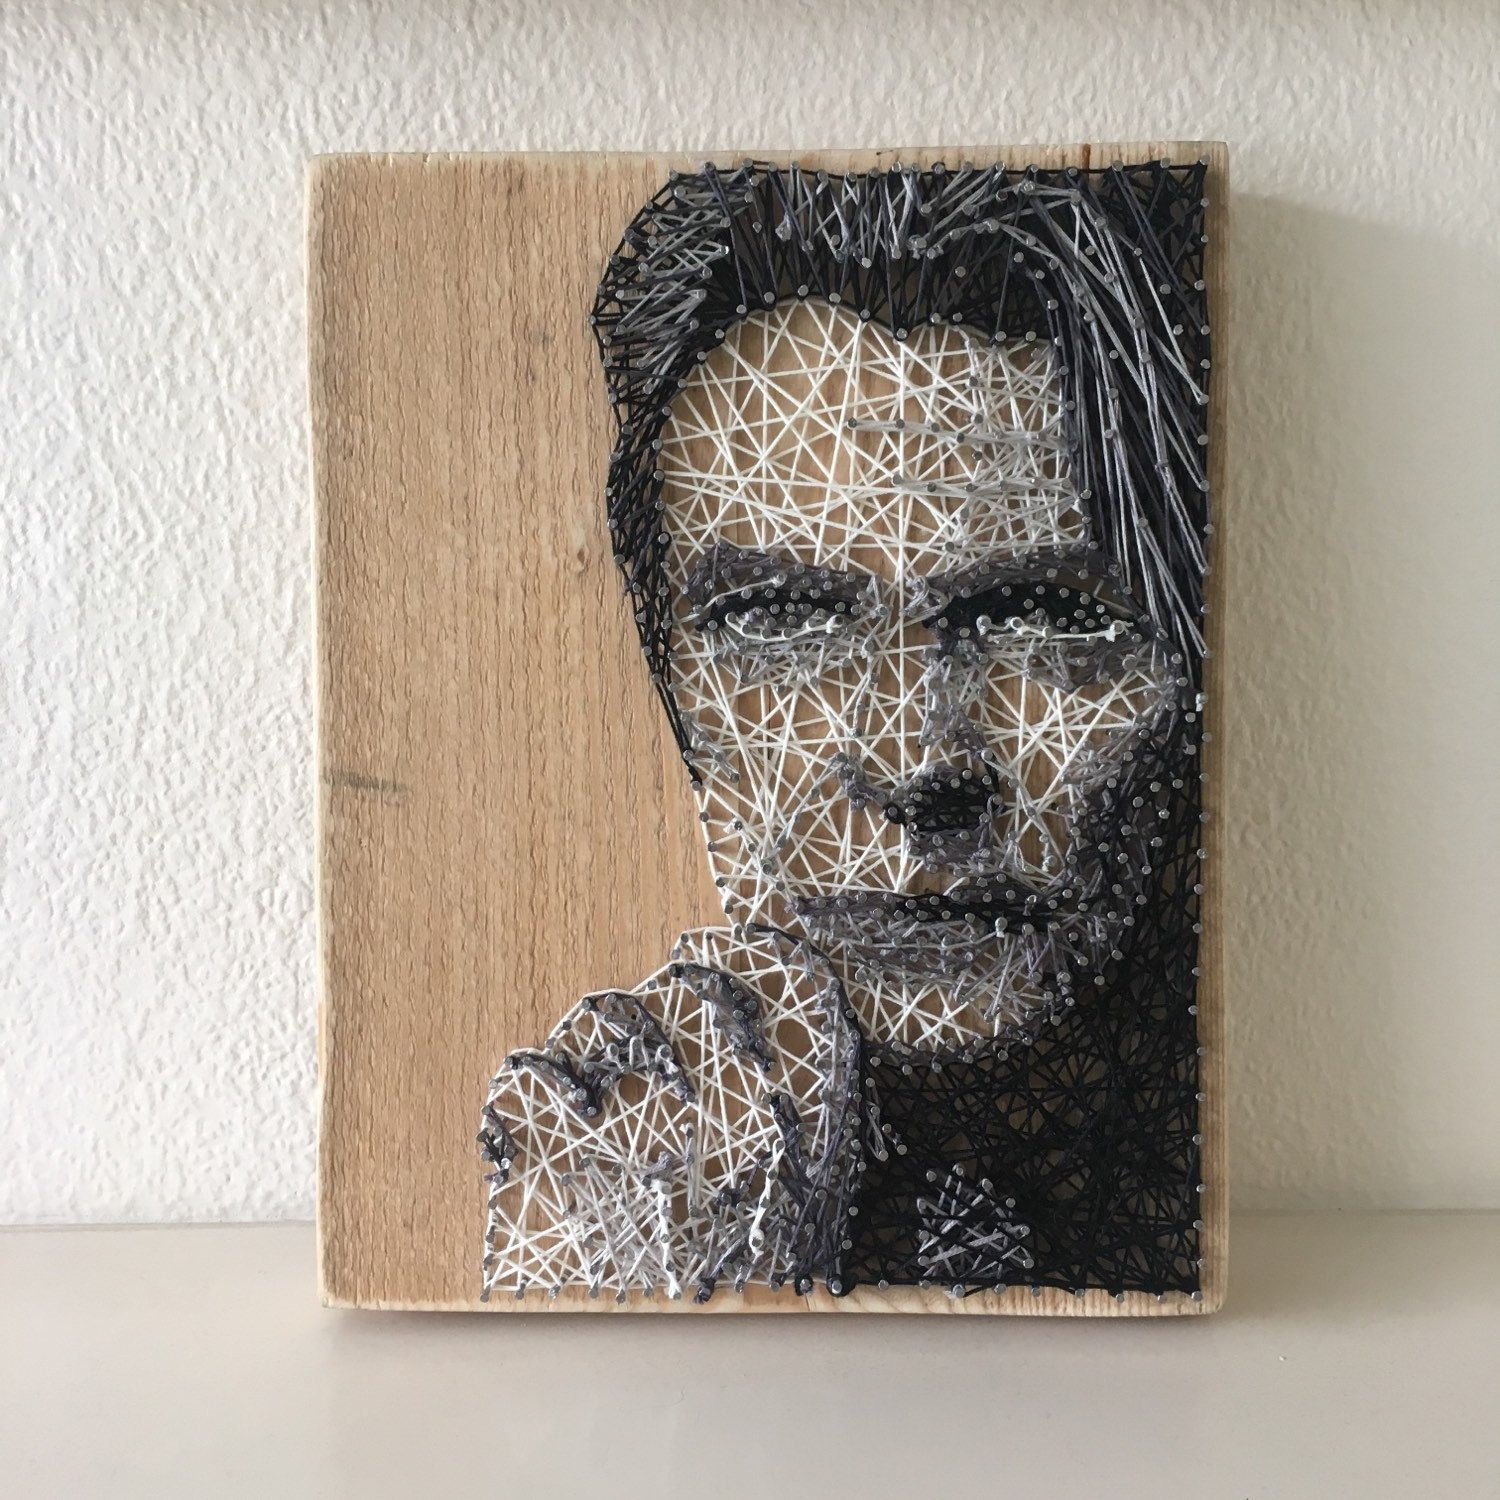 David Bowie String Art ritratto di StringsByAshley su Etsy | string ...